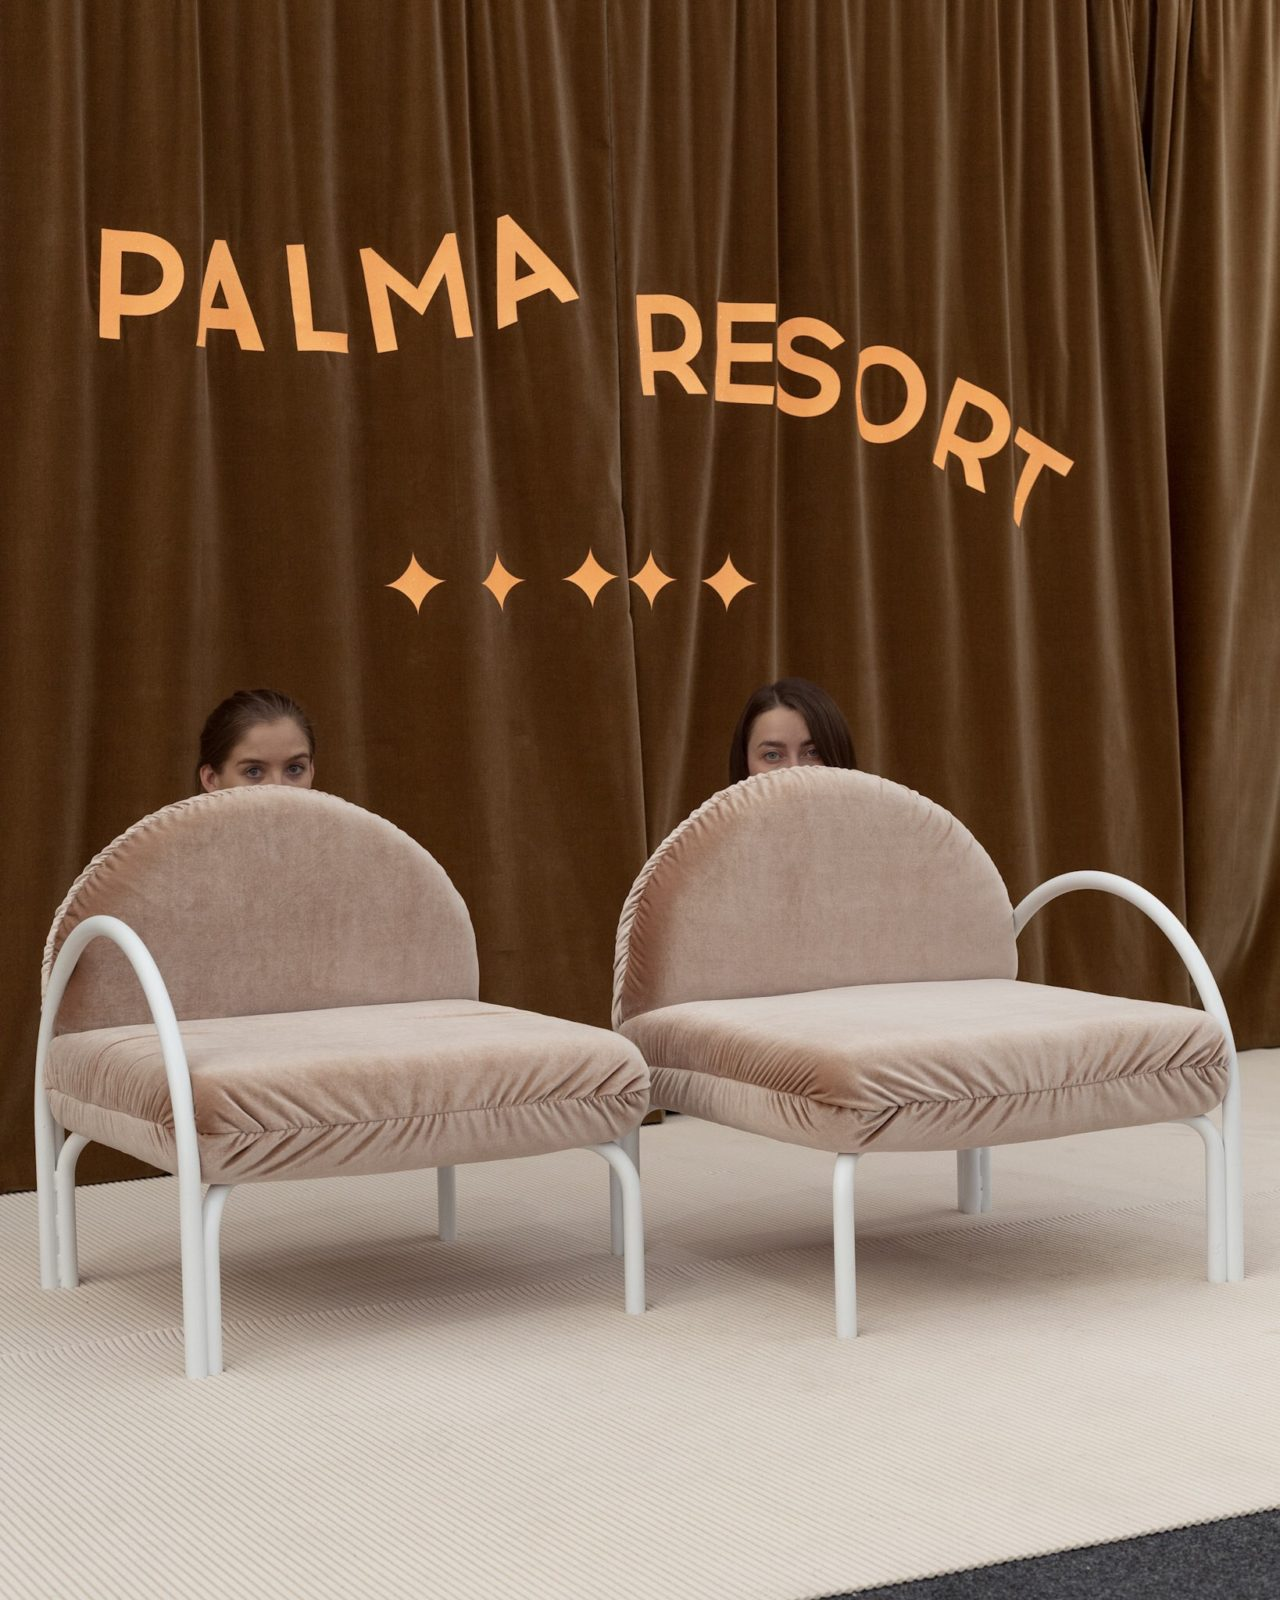 resort collection palma de alma fait revivre les ann es 90 huskdesignblog. Black Bedroom Furniture Sets. Home Design Ideas